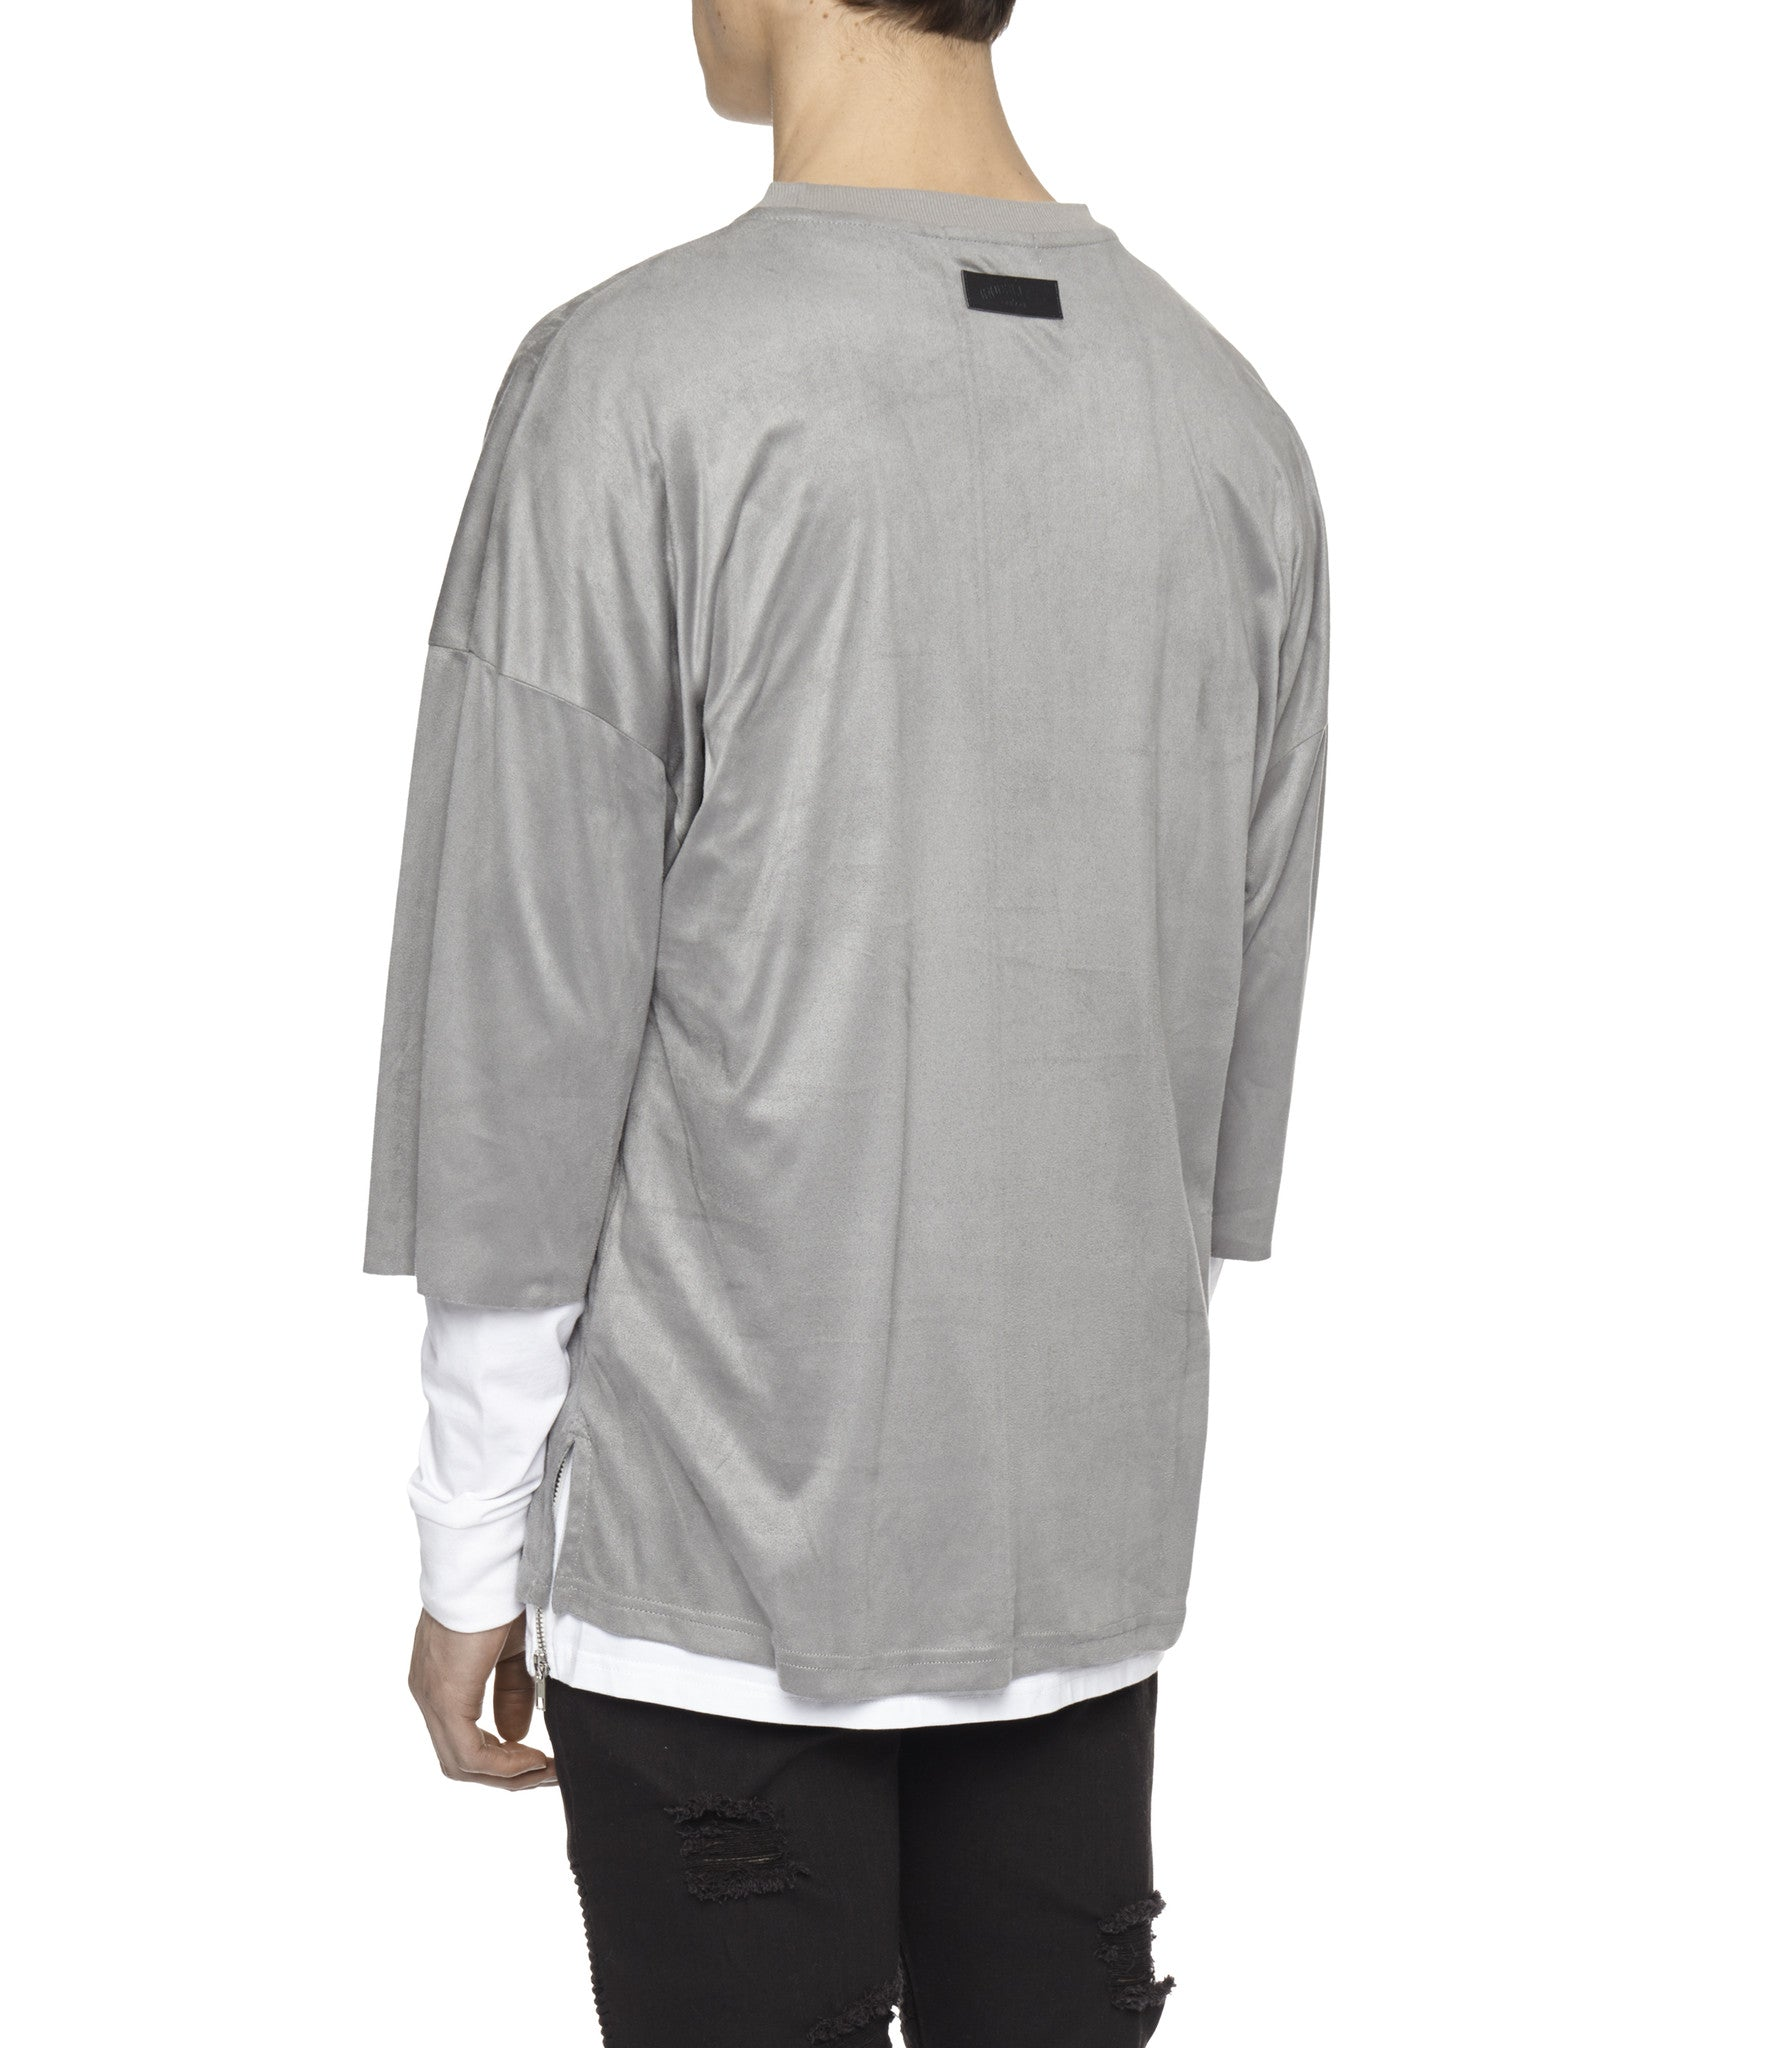 TS302 Suede Oversized Box Tee - Smokey Grey - underated london - underatedco - 5